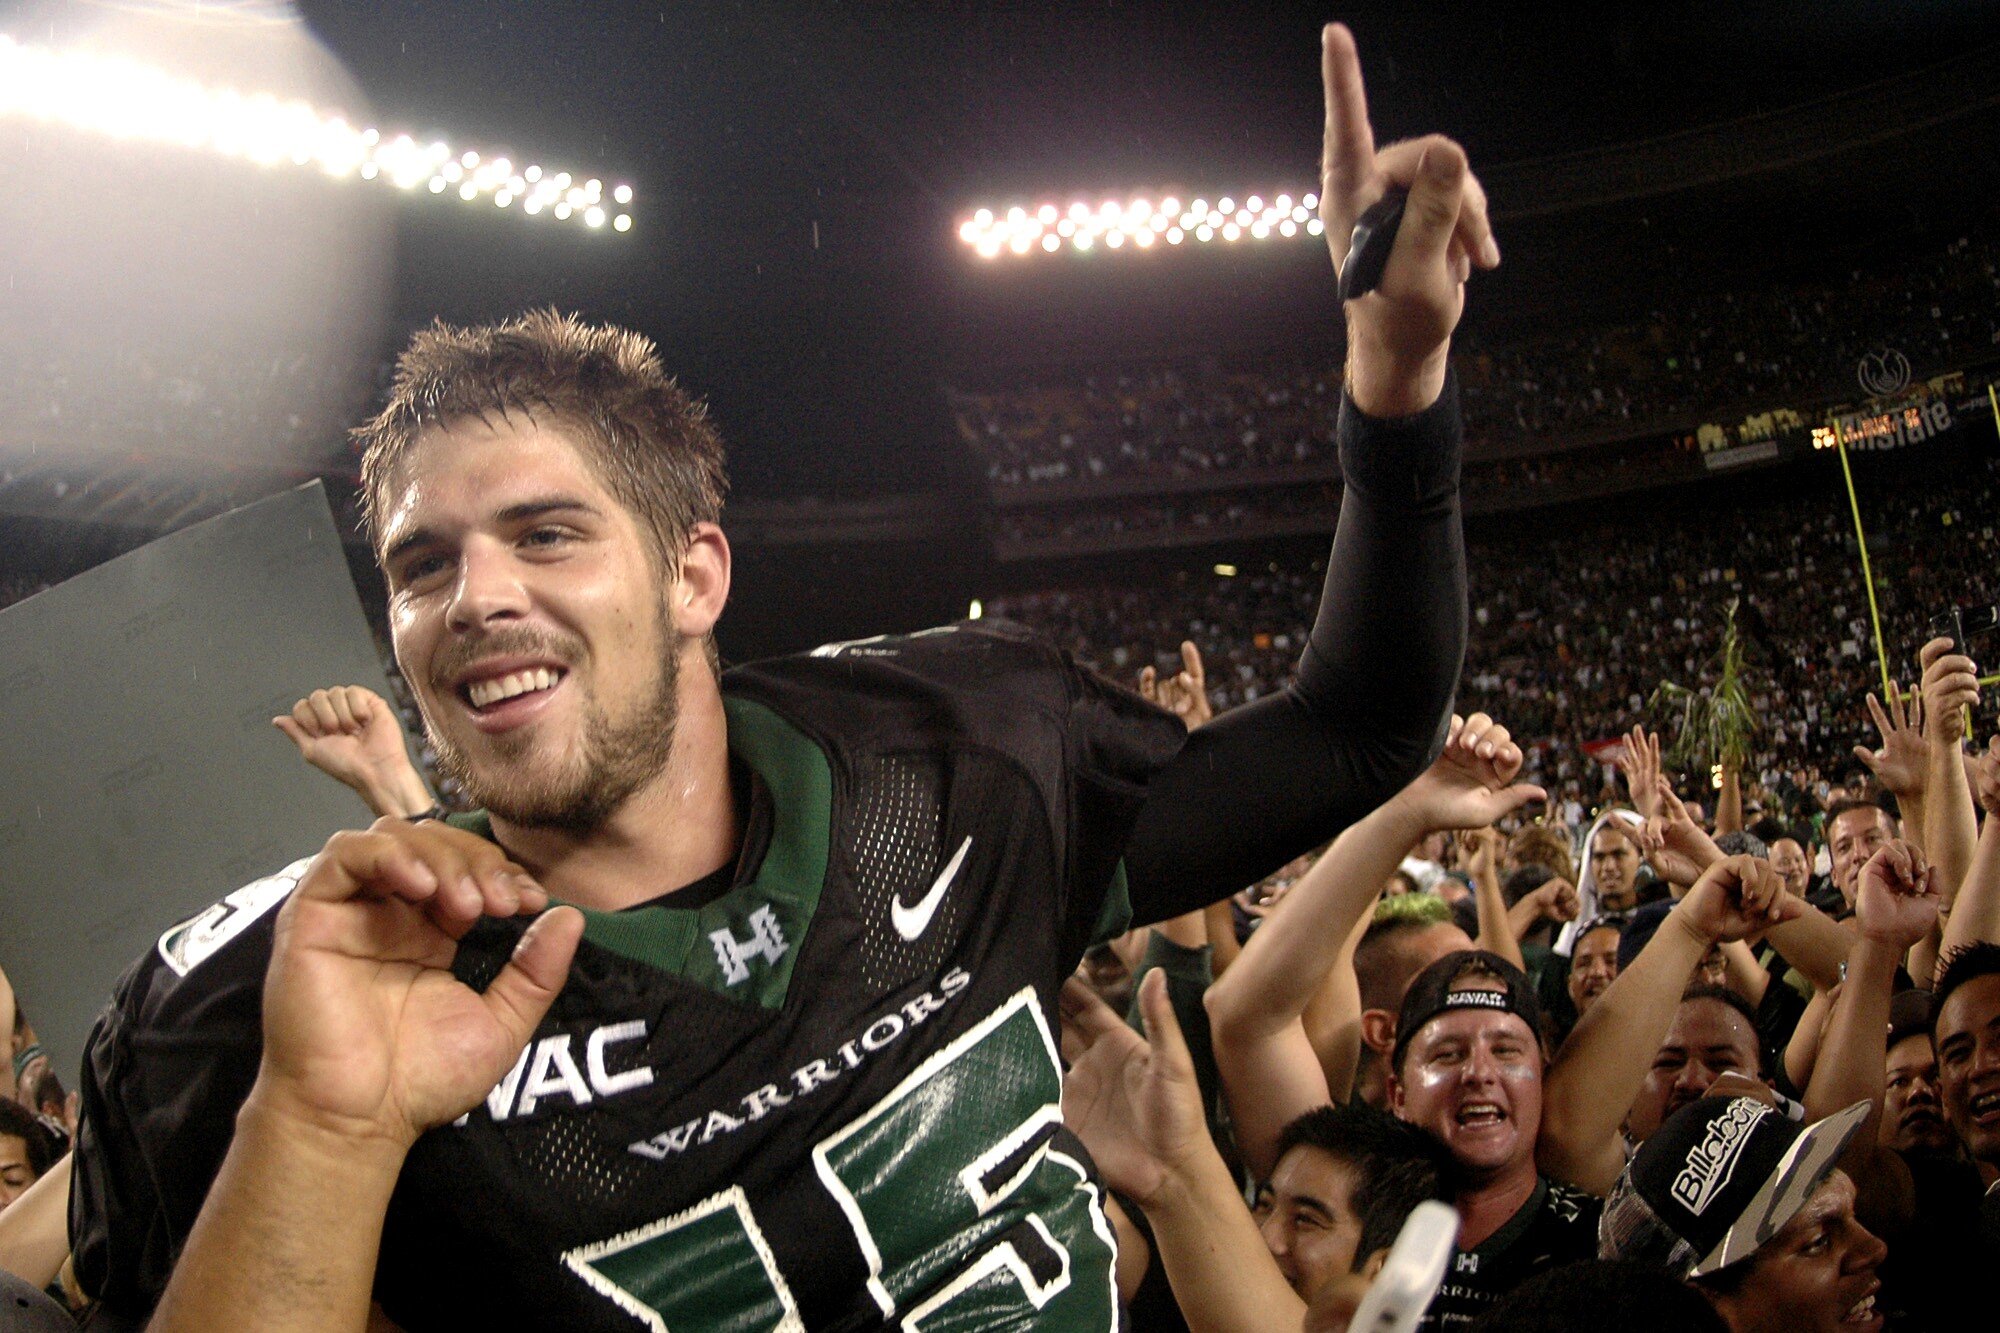 Colt Brennan celebrates after leading Hawaii to victory over Boise State on Nov. 23, 2007.